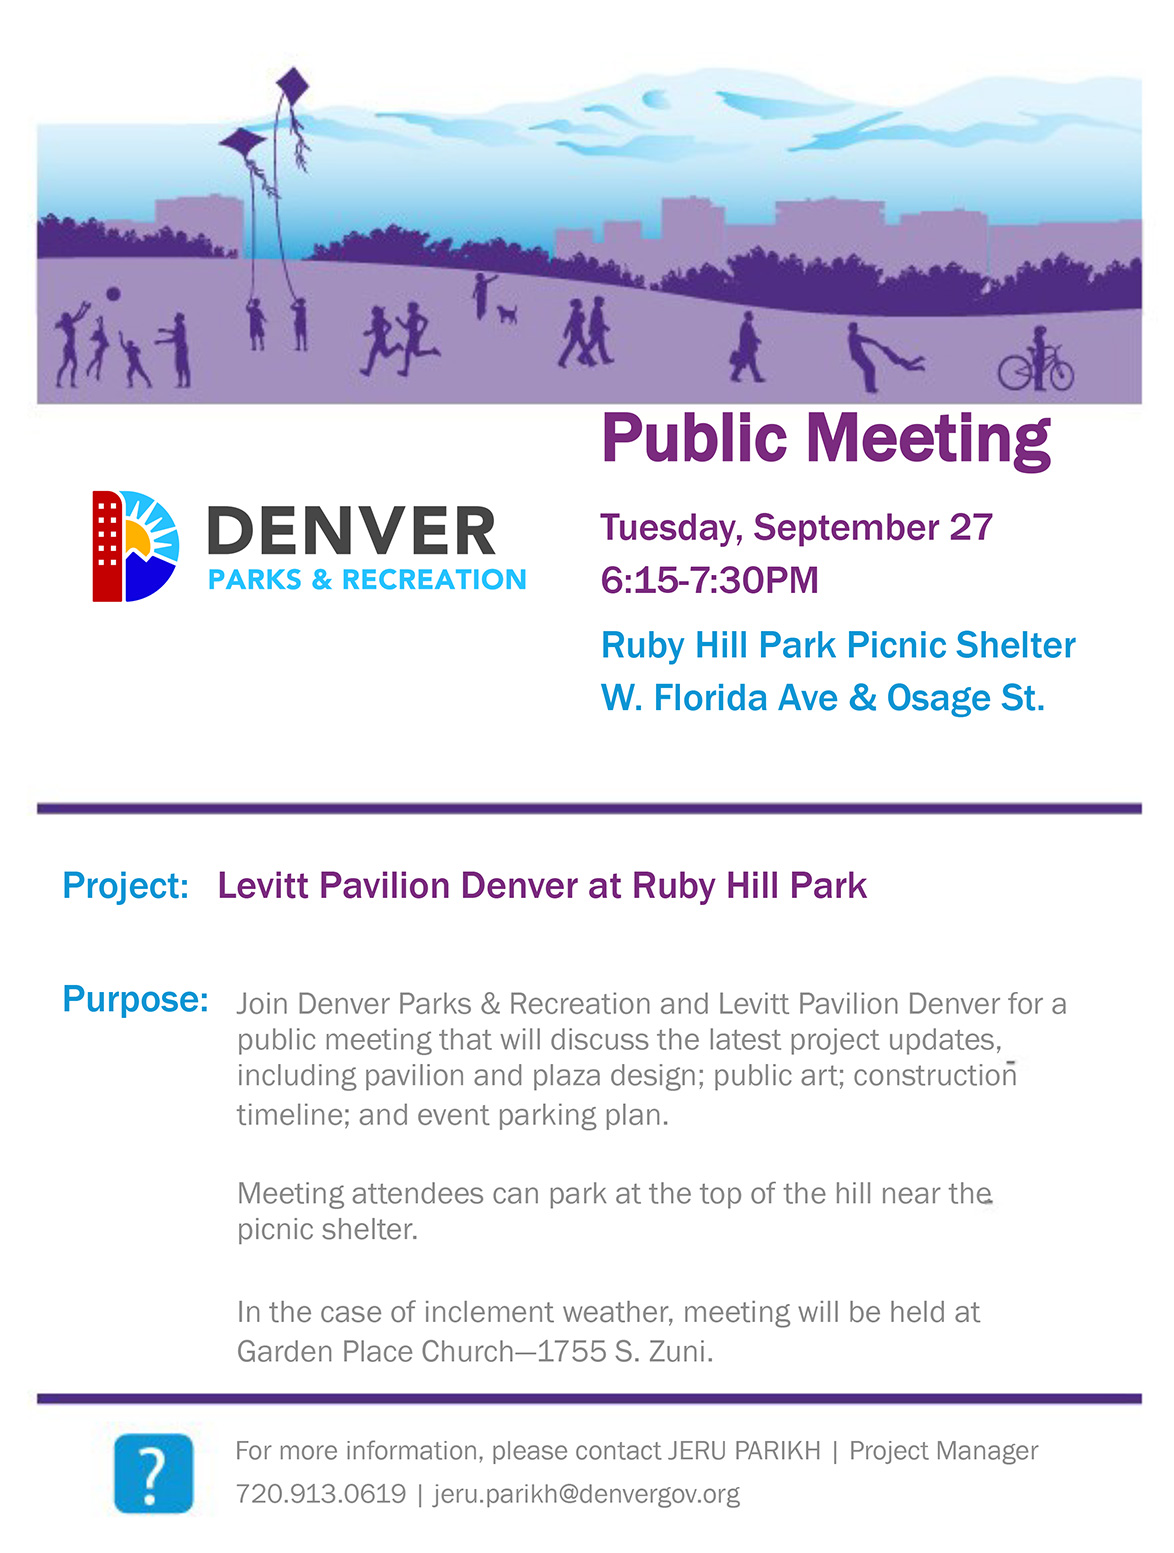 Announcement flyer for a public meeting held by Denver Parks and Rec and Levitt Pavilion at Ruby Hill Park.